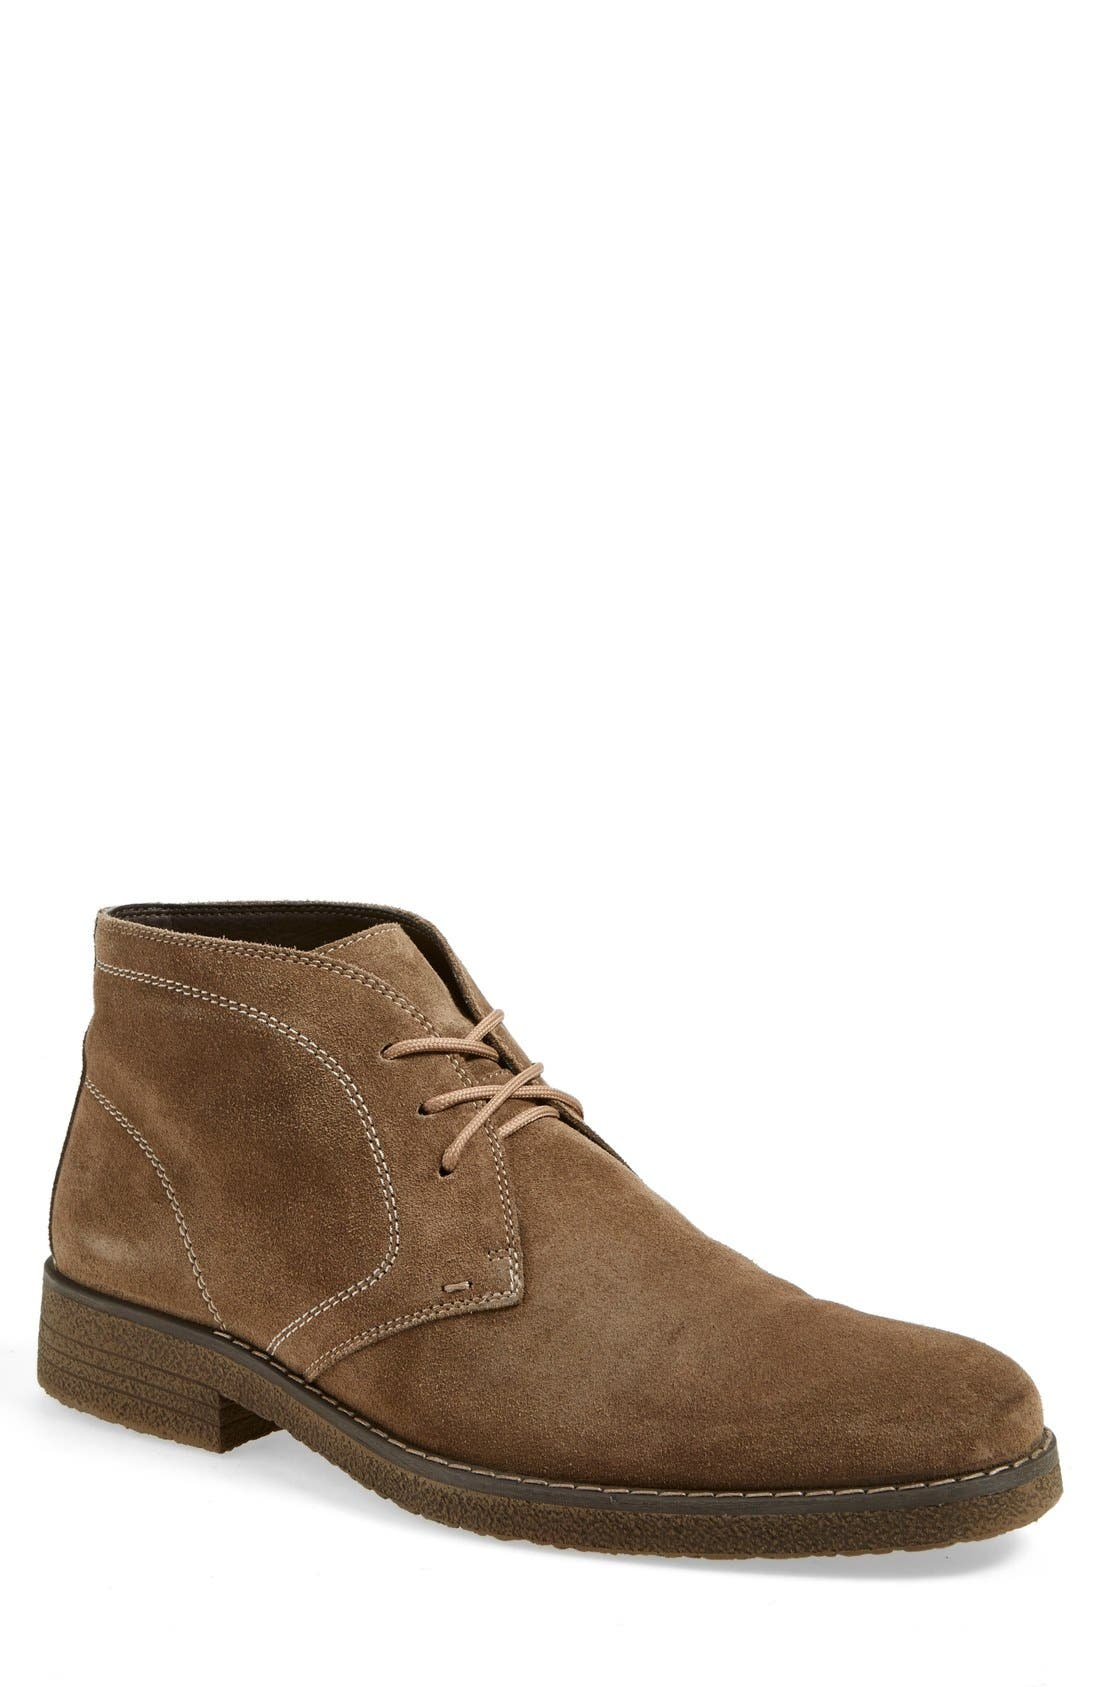 'Tyler' Chukka Boot,                         Main,                         color, Taupe Suede